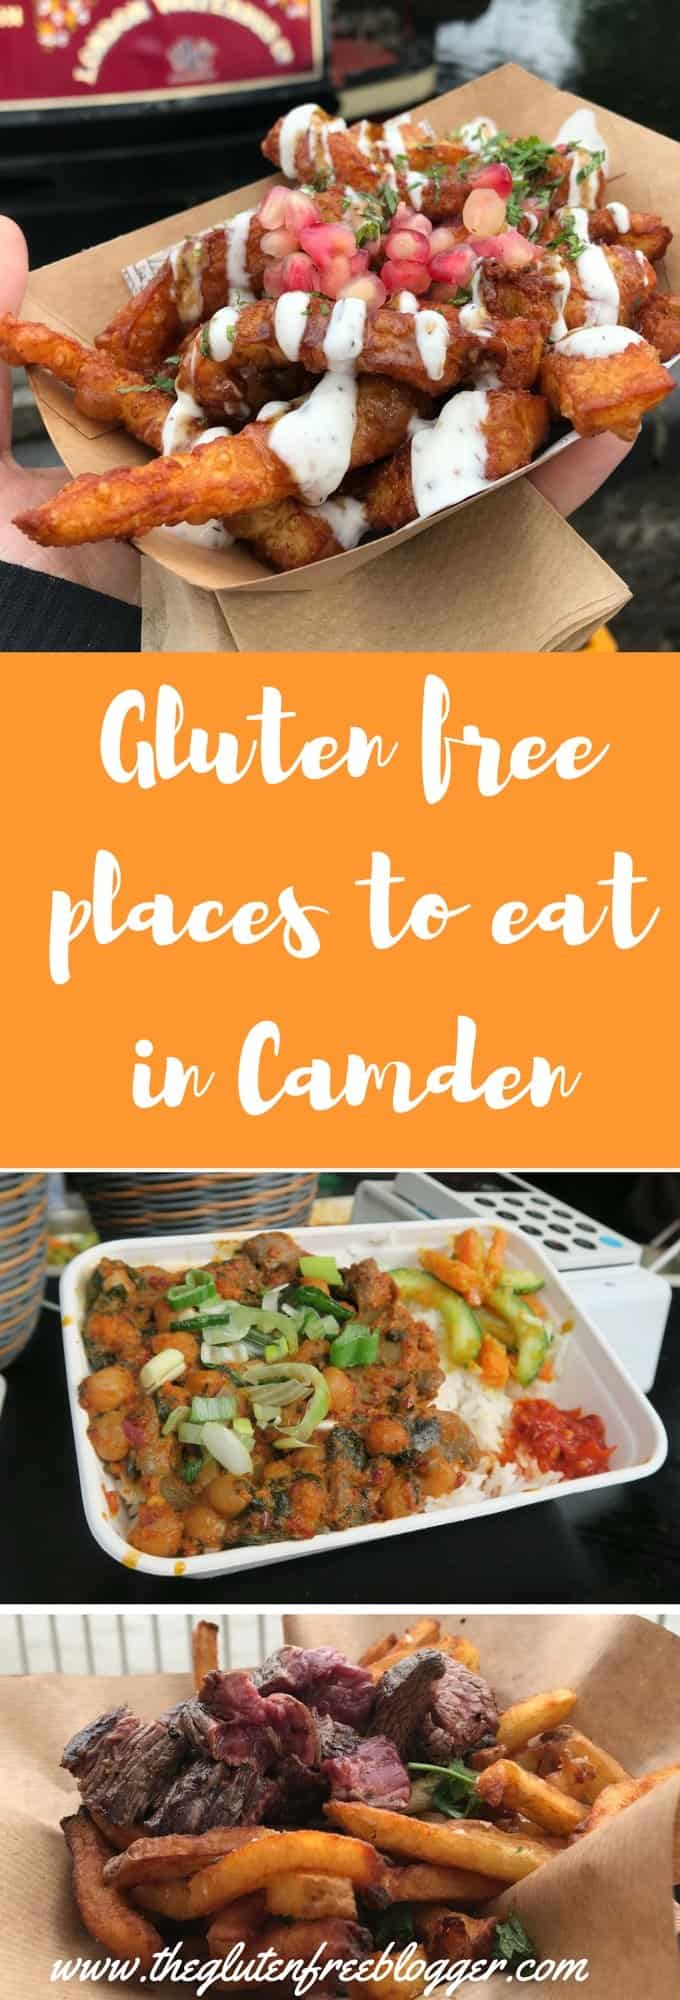 Gluten free places to eat in Camden - gluten free London - London food - www.theglutenfreeblogger.com